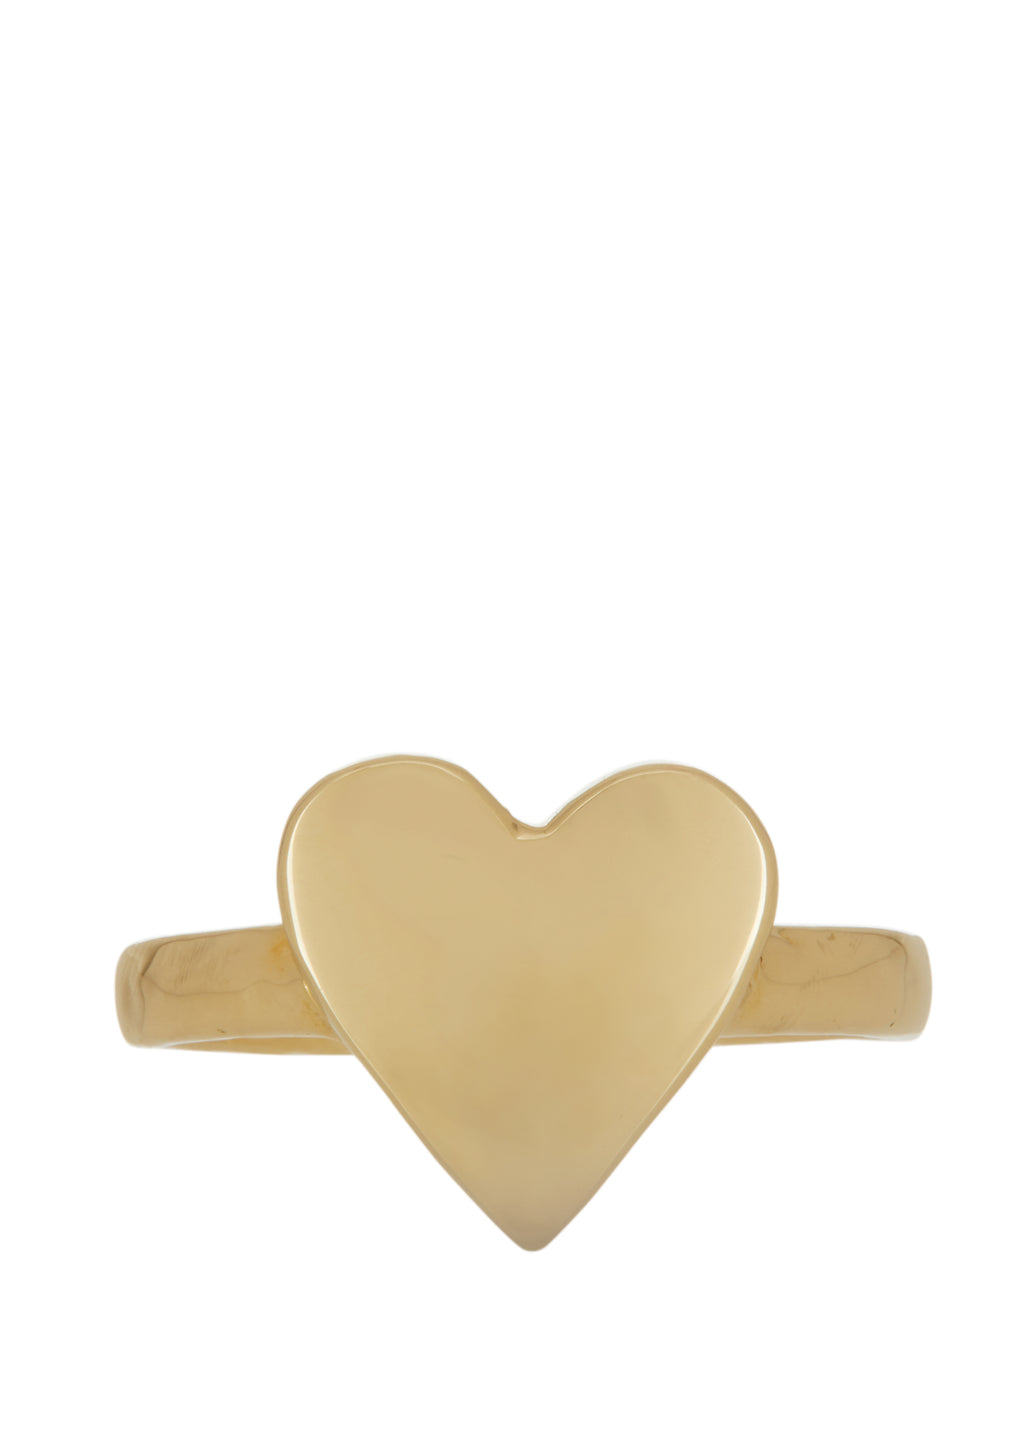 Heart Ring in 14k